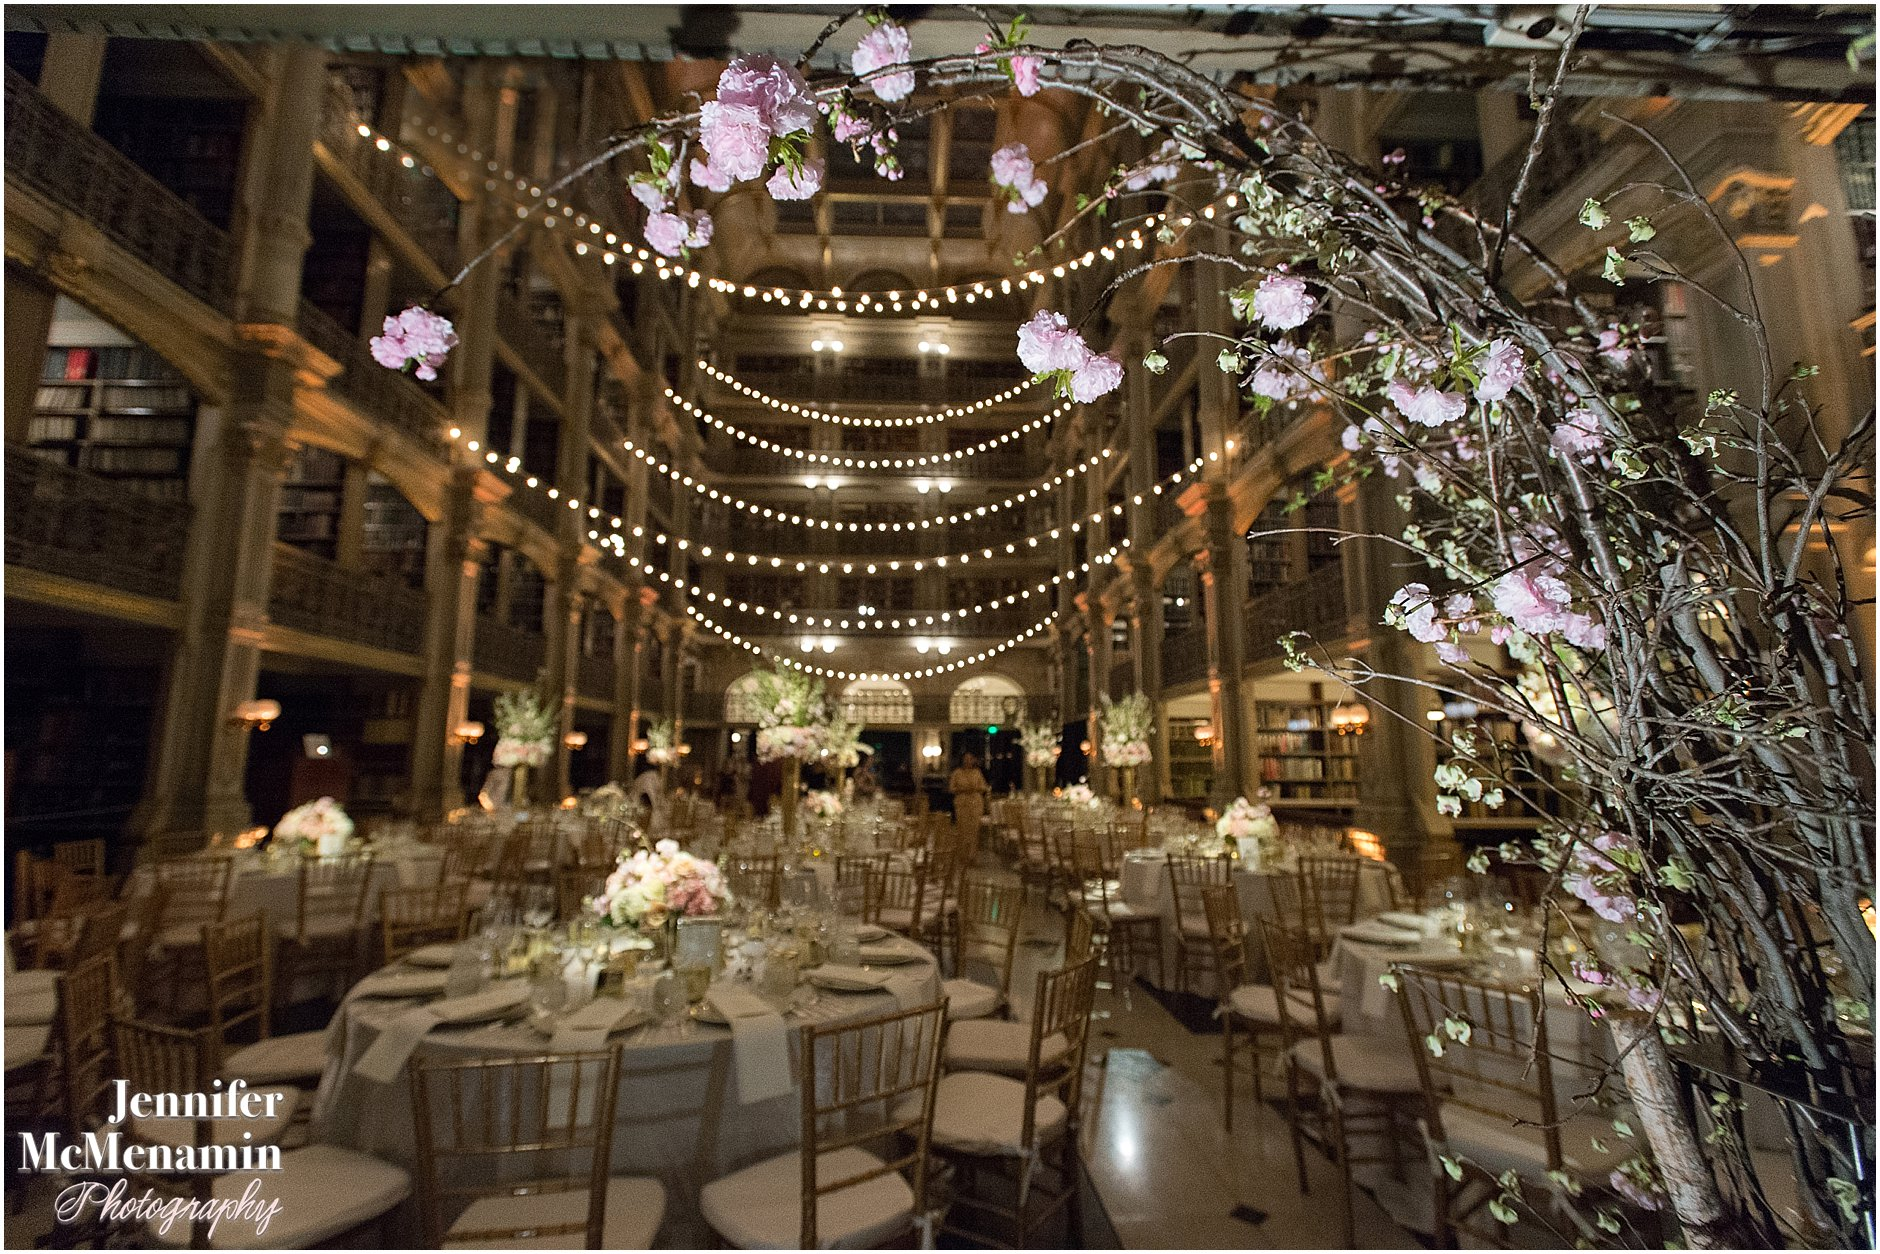 066-Peabody-Library-Wedding_WilsonPatterson_02498-0522_Jennifer-McMenamin-Photography